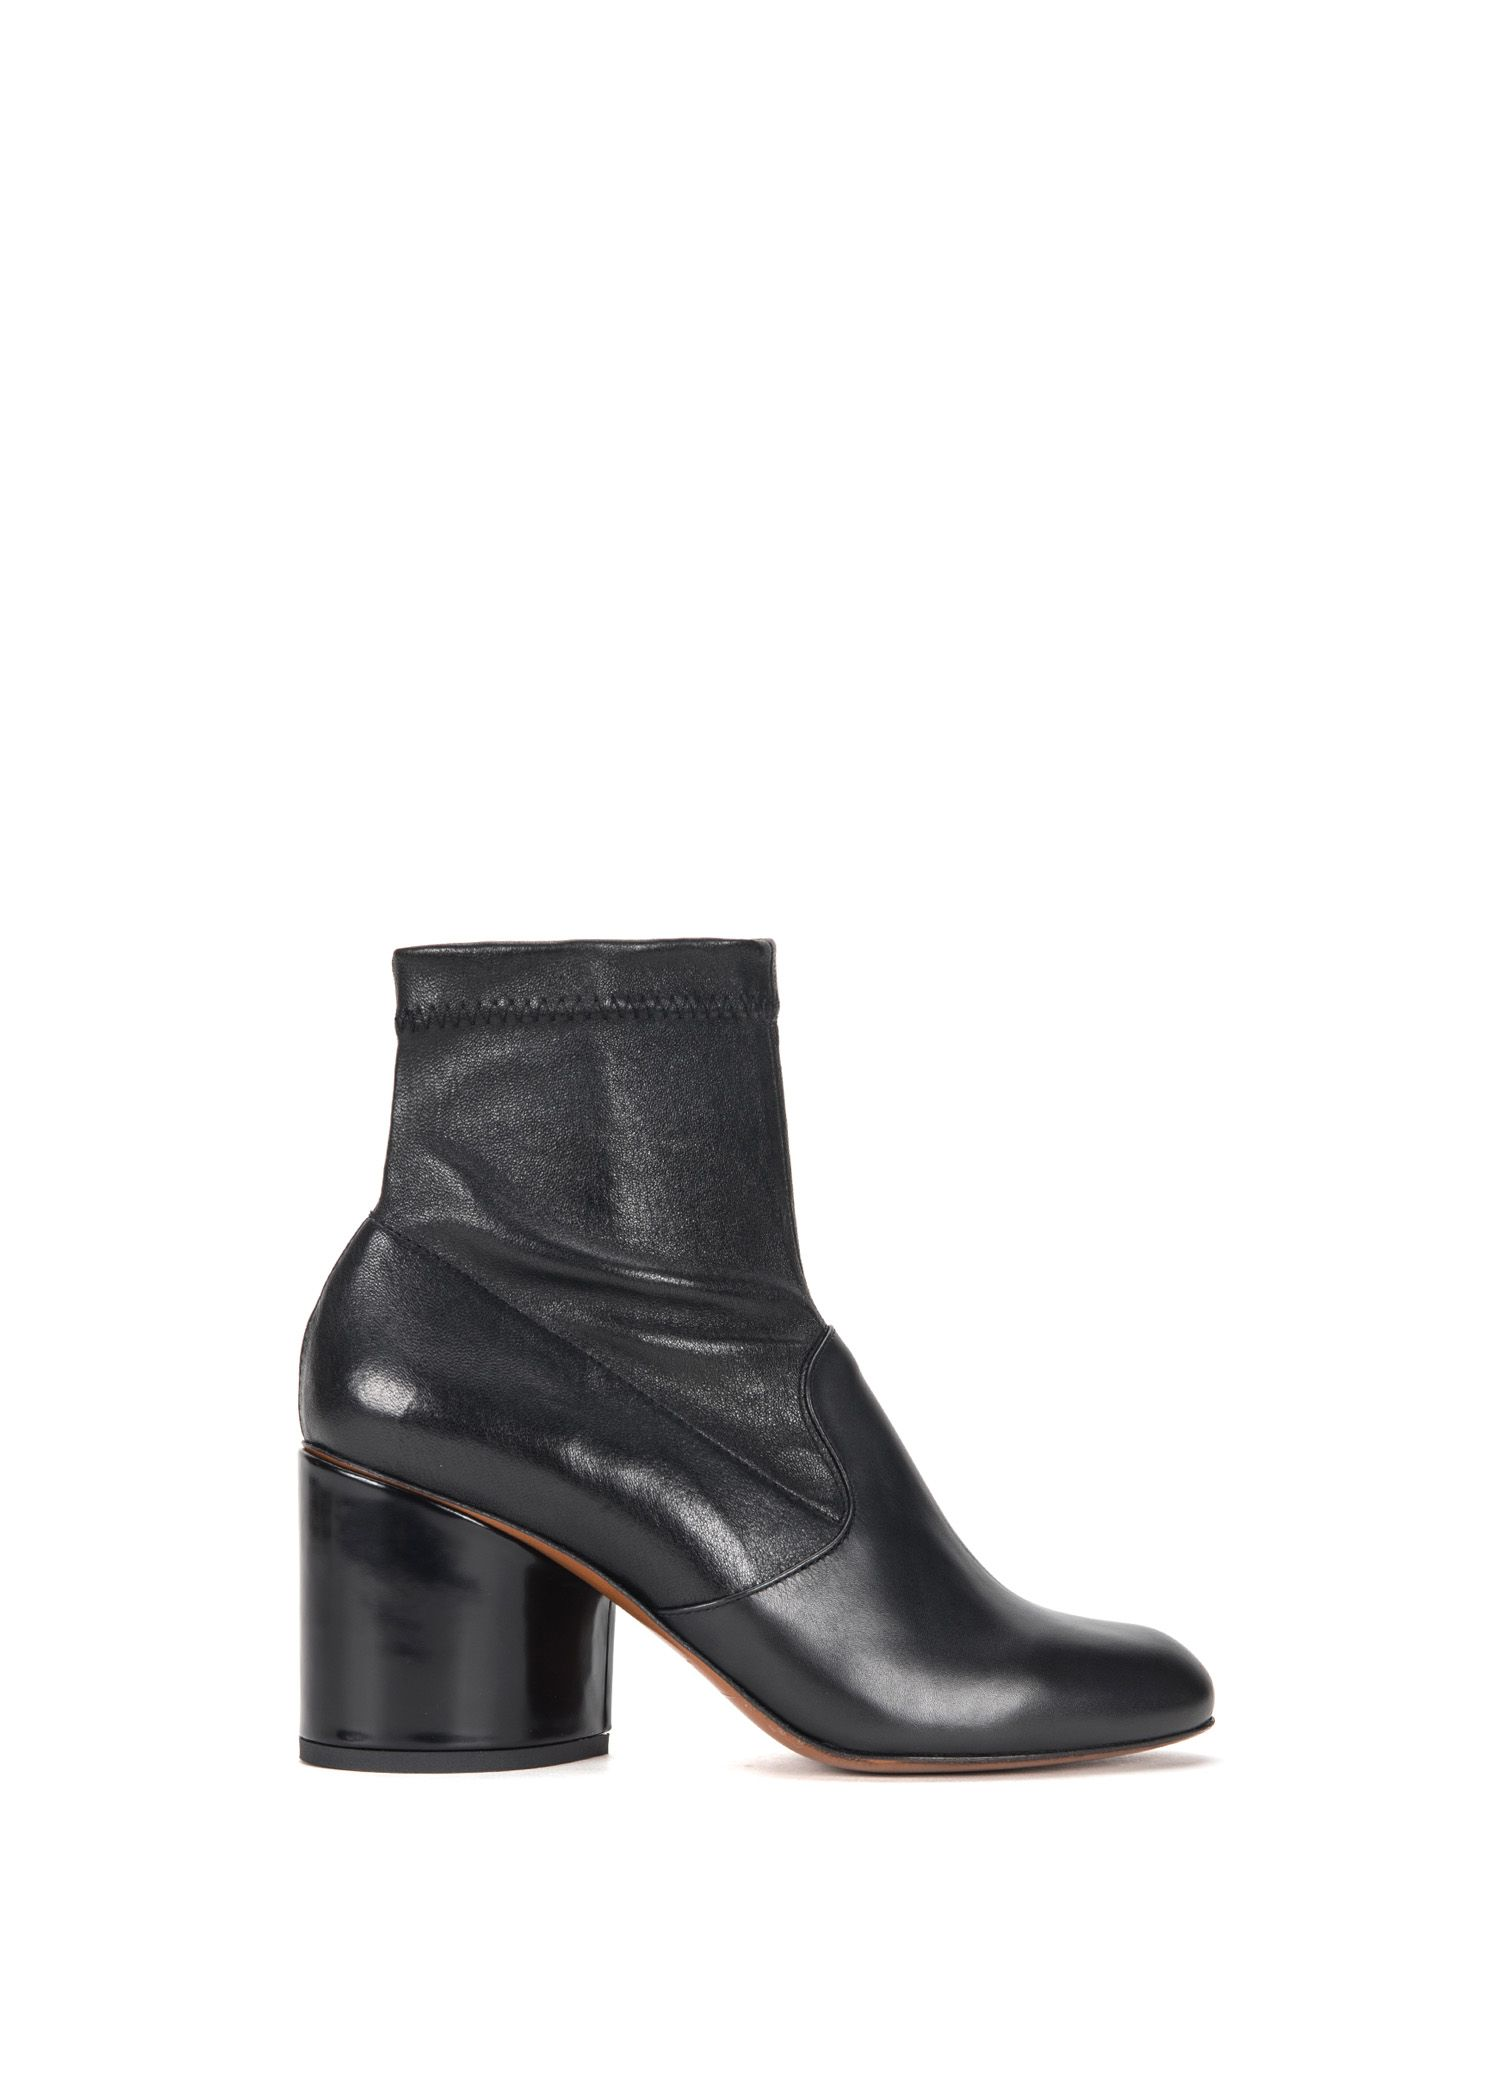 63cf4e12ad7 ROBERT CLERGERIE STRETCH LEATHER ANKLE BOOTS.  robertclergerie  shoes